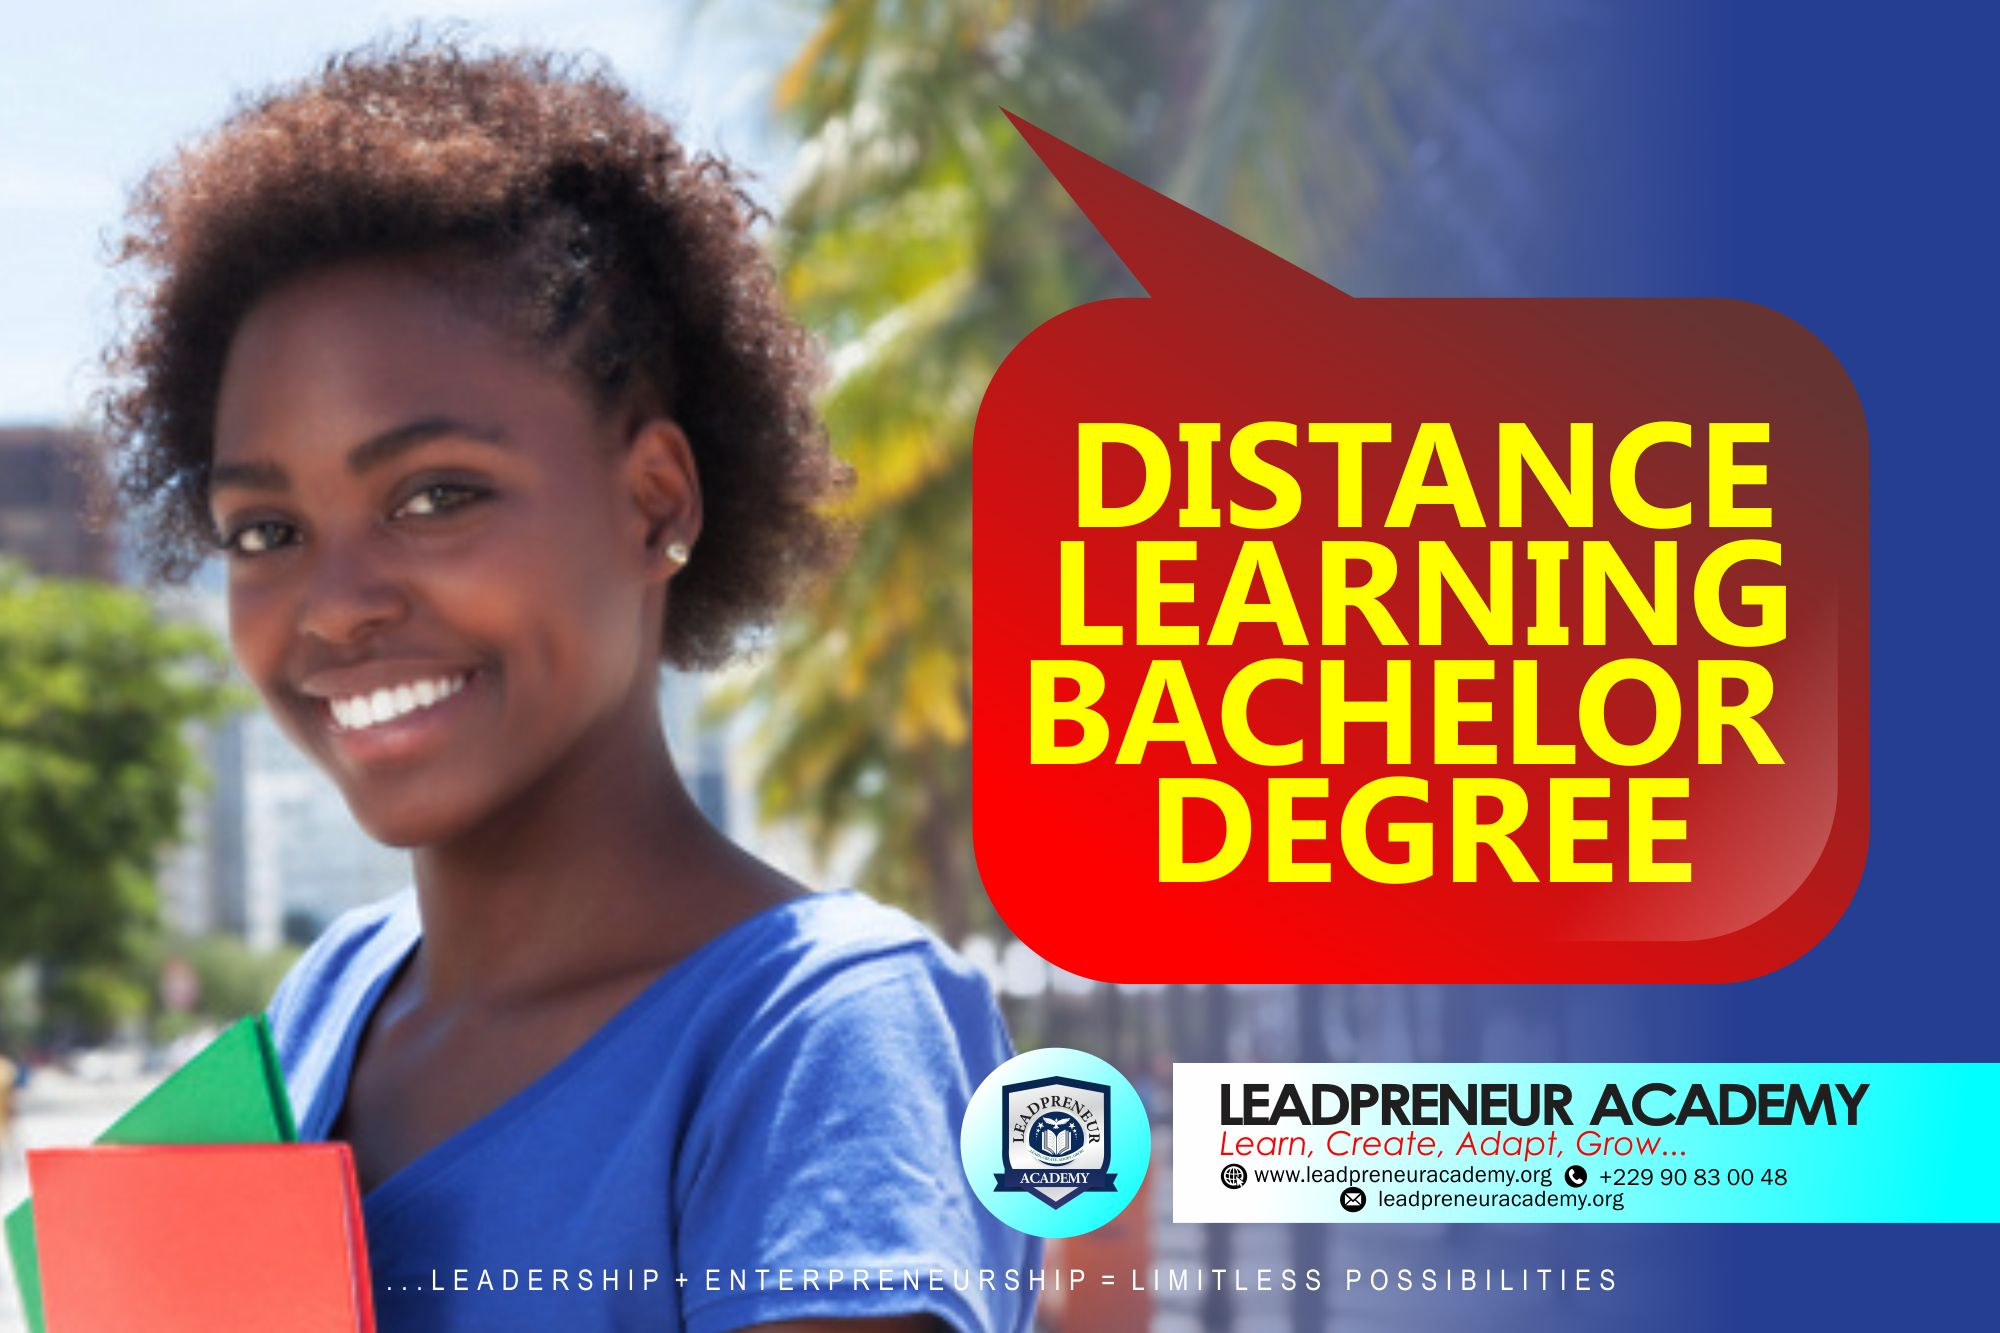 distance learning bachelor degree on leadpreneur academy